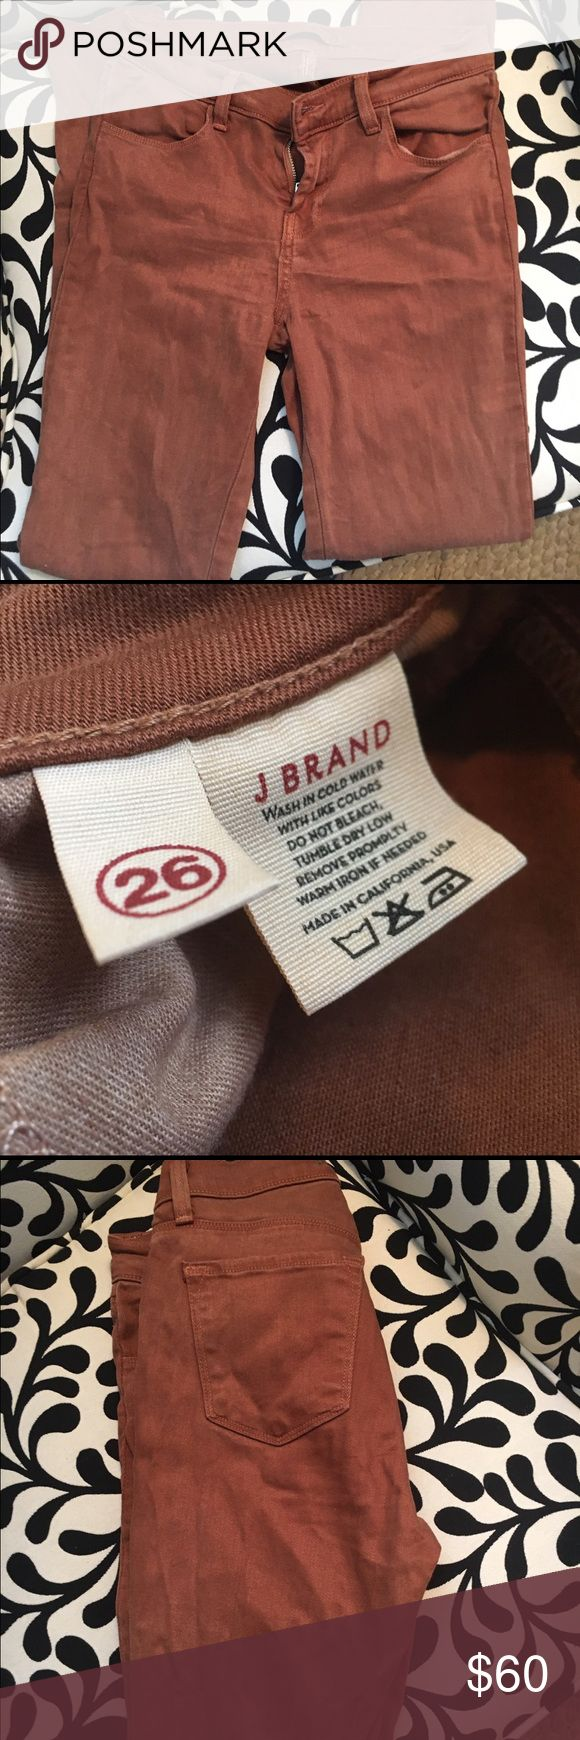 J brand size 26 brown skinny jeans Lightly worn brown skinny jeans. Size 26 J Brand Jeans Skinny